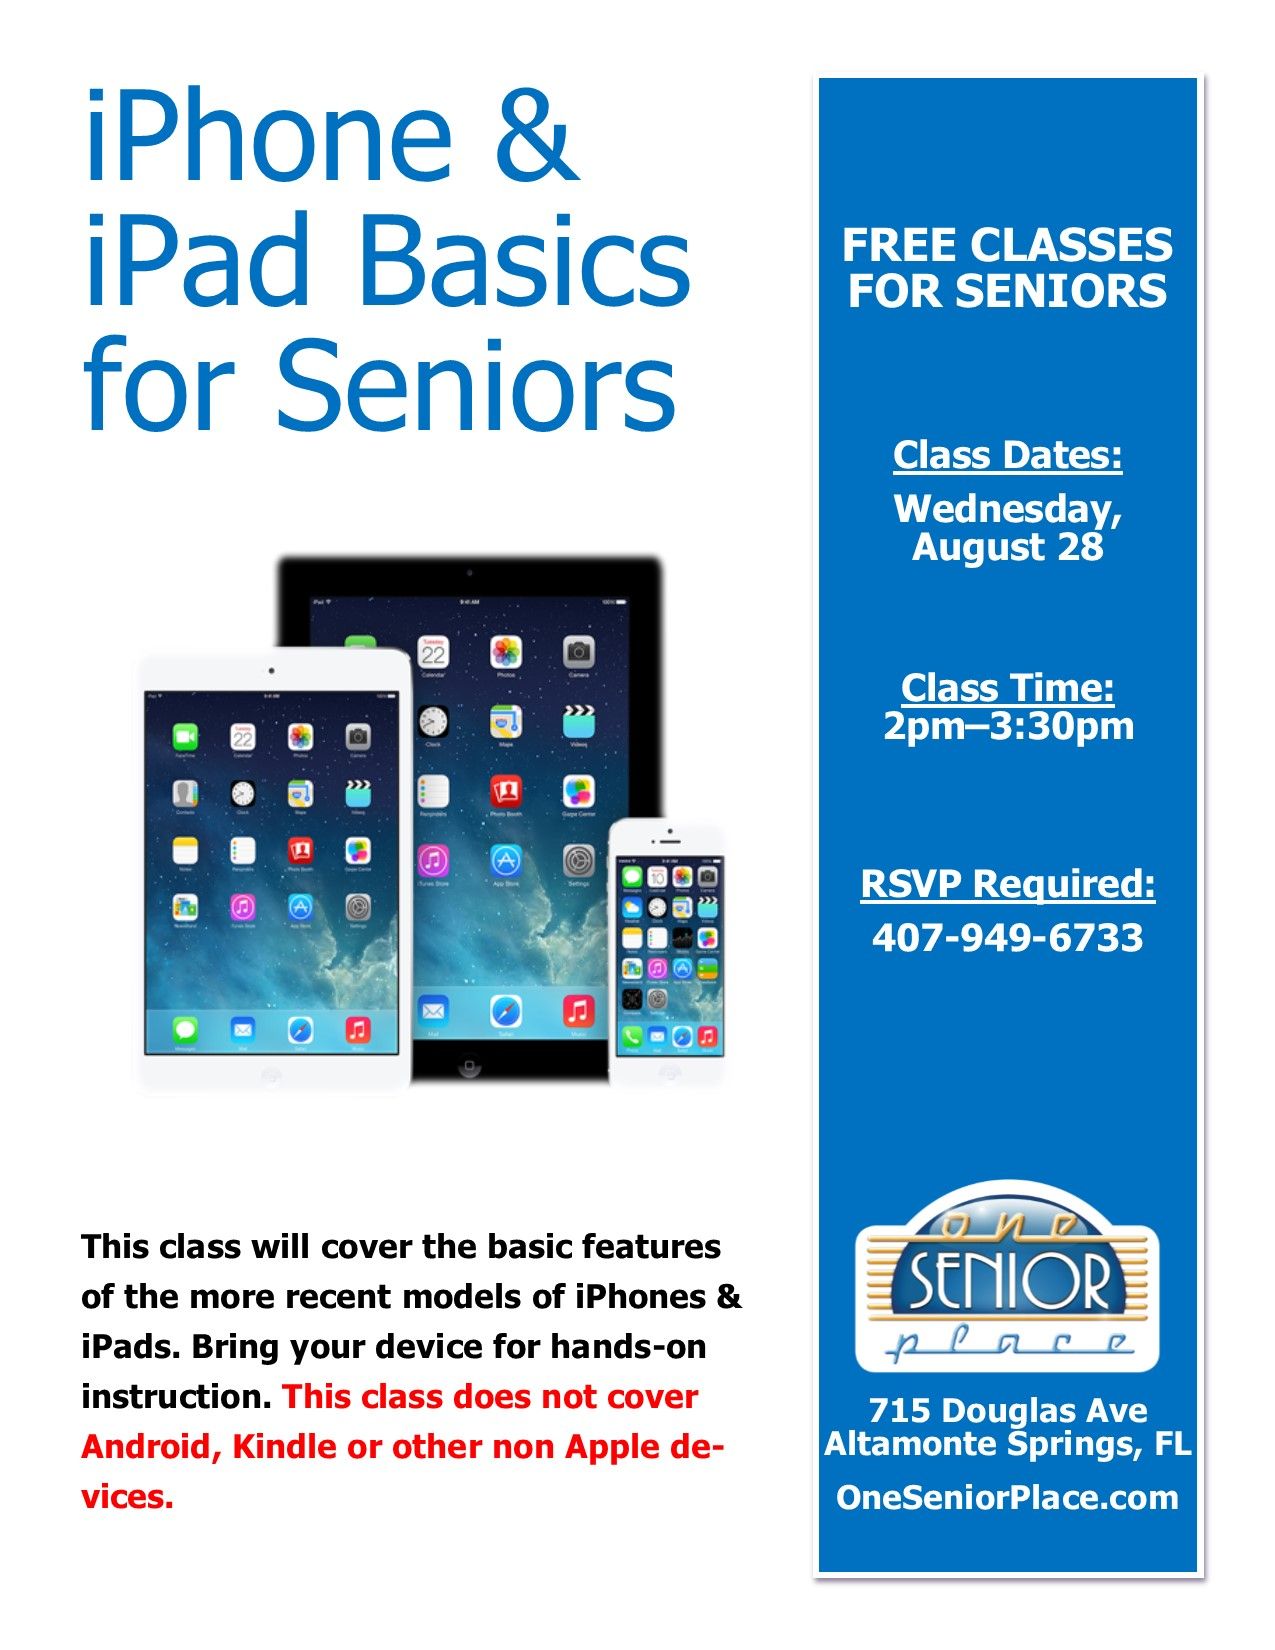 iPhone & iPad Class for Seniors